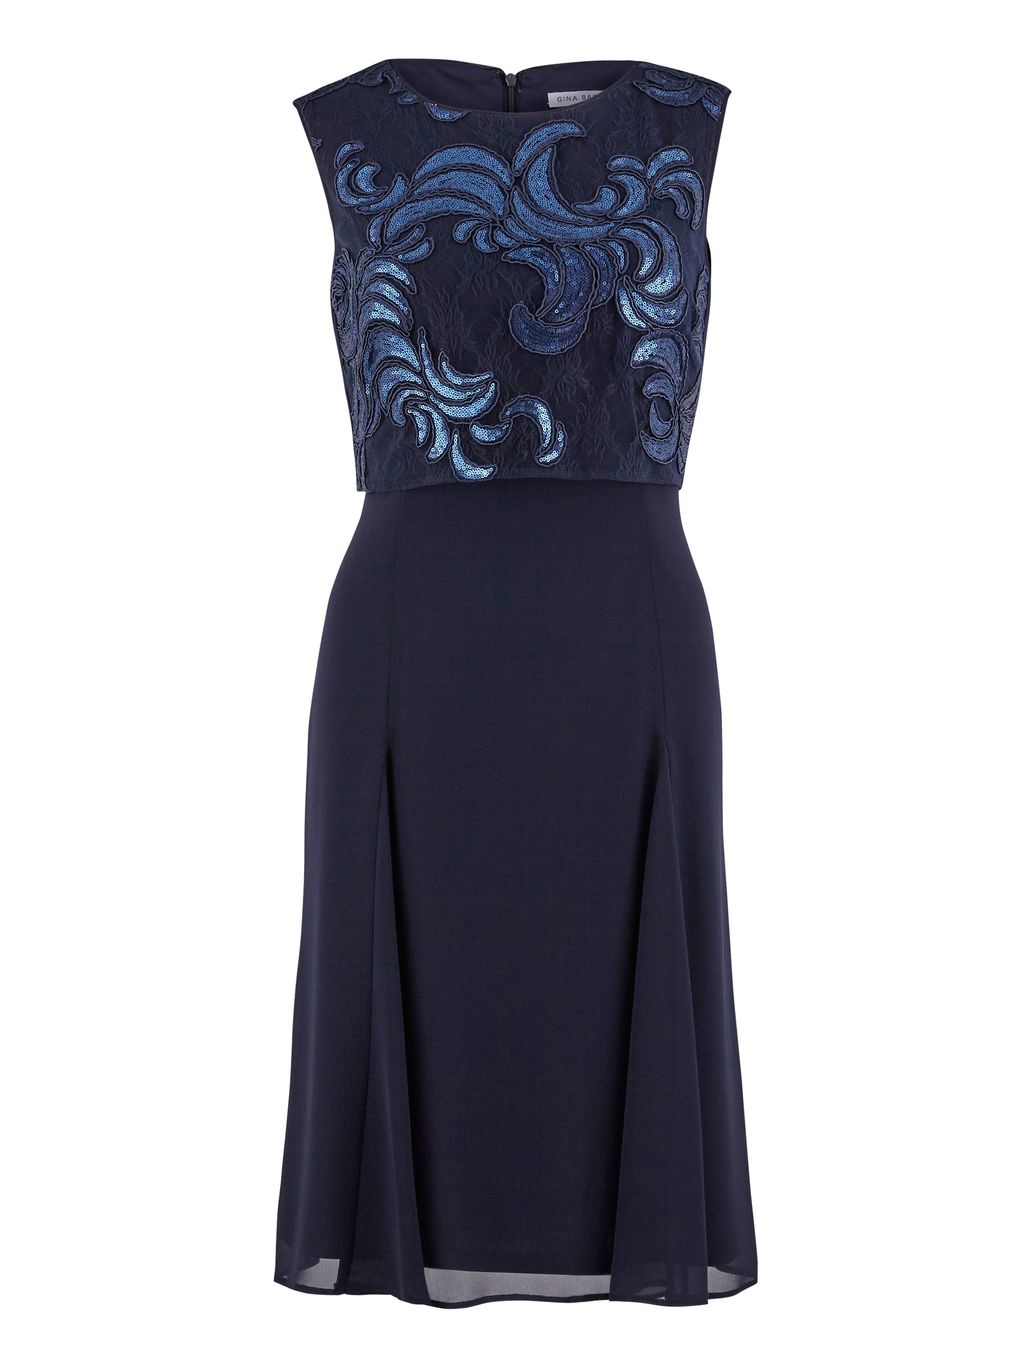 2 Tone Navy Sequin And Chiffon Dress, Navy - length: below the knee; pattern: plain; sleeve style: sleeveless; predominant colour: navy; occasions: evening; fit: fitted at waist & bust; style: fit & flare; fibres: polyester/polyamide - 100%; neckline: crew; sleeve length: sleeveless; texture group: sheer fabrics/chiffon/organza etc.; pattern type: fabric; embellishment: sequins; season: s/s 2016; wardrobe: event; embellishment location: bust